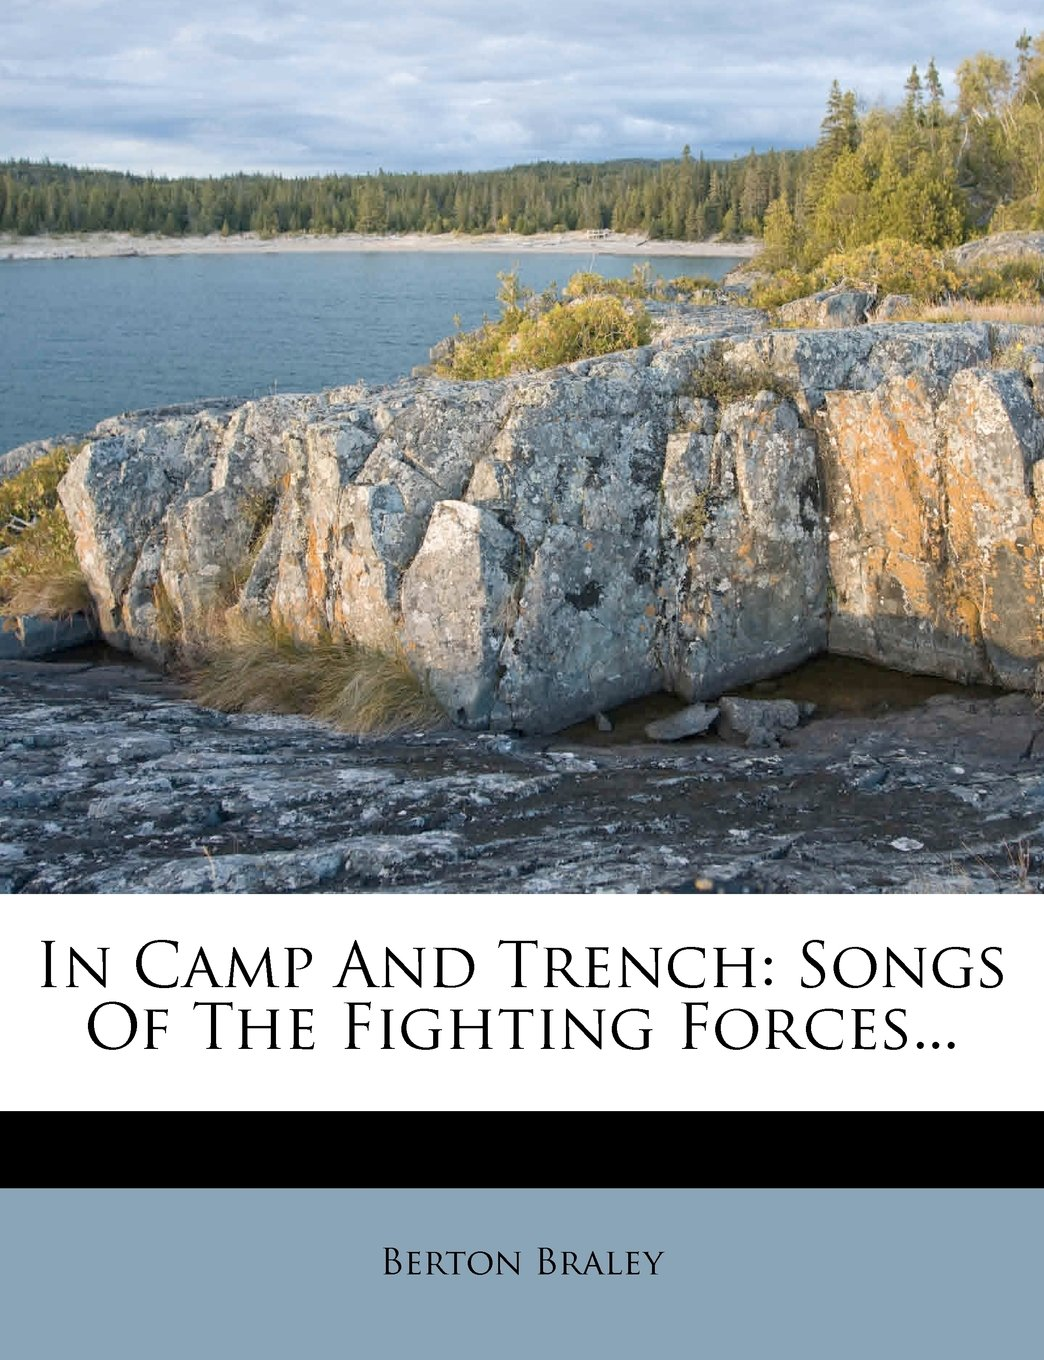 In Camp And Trench: Songs Of The Fighting Forces... PDF